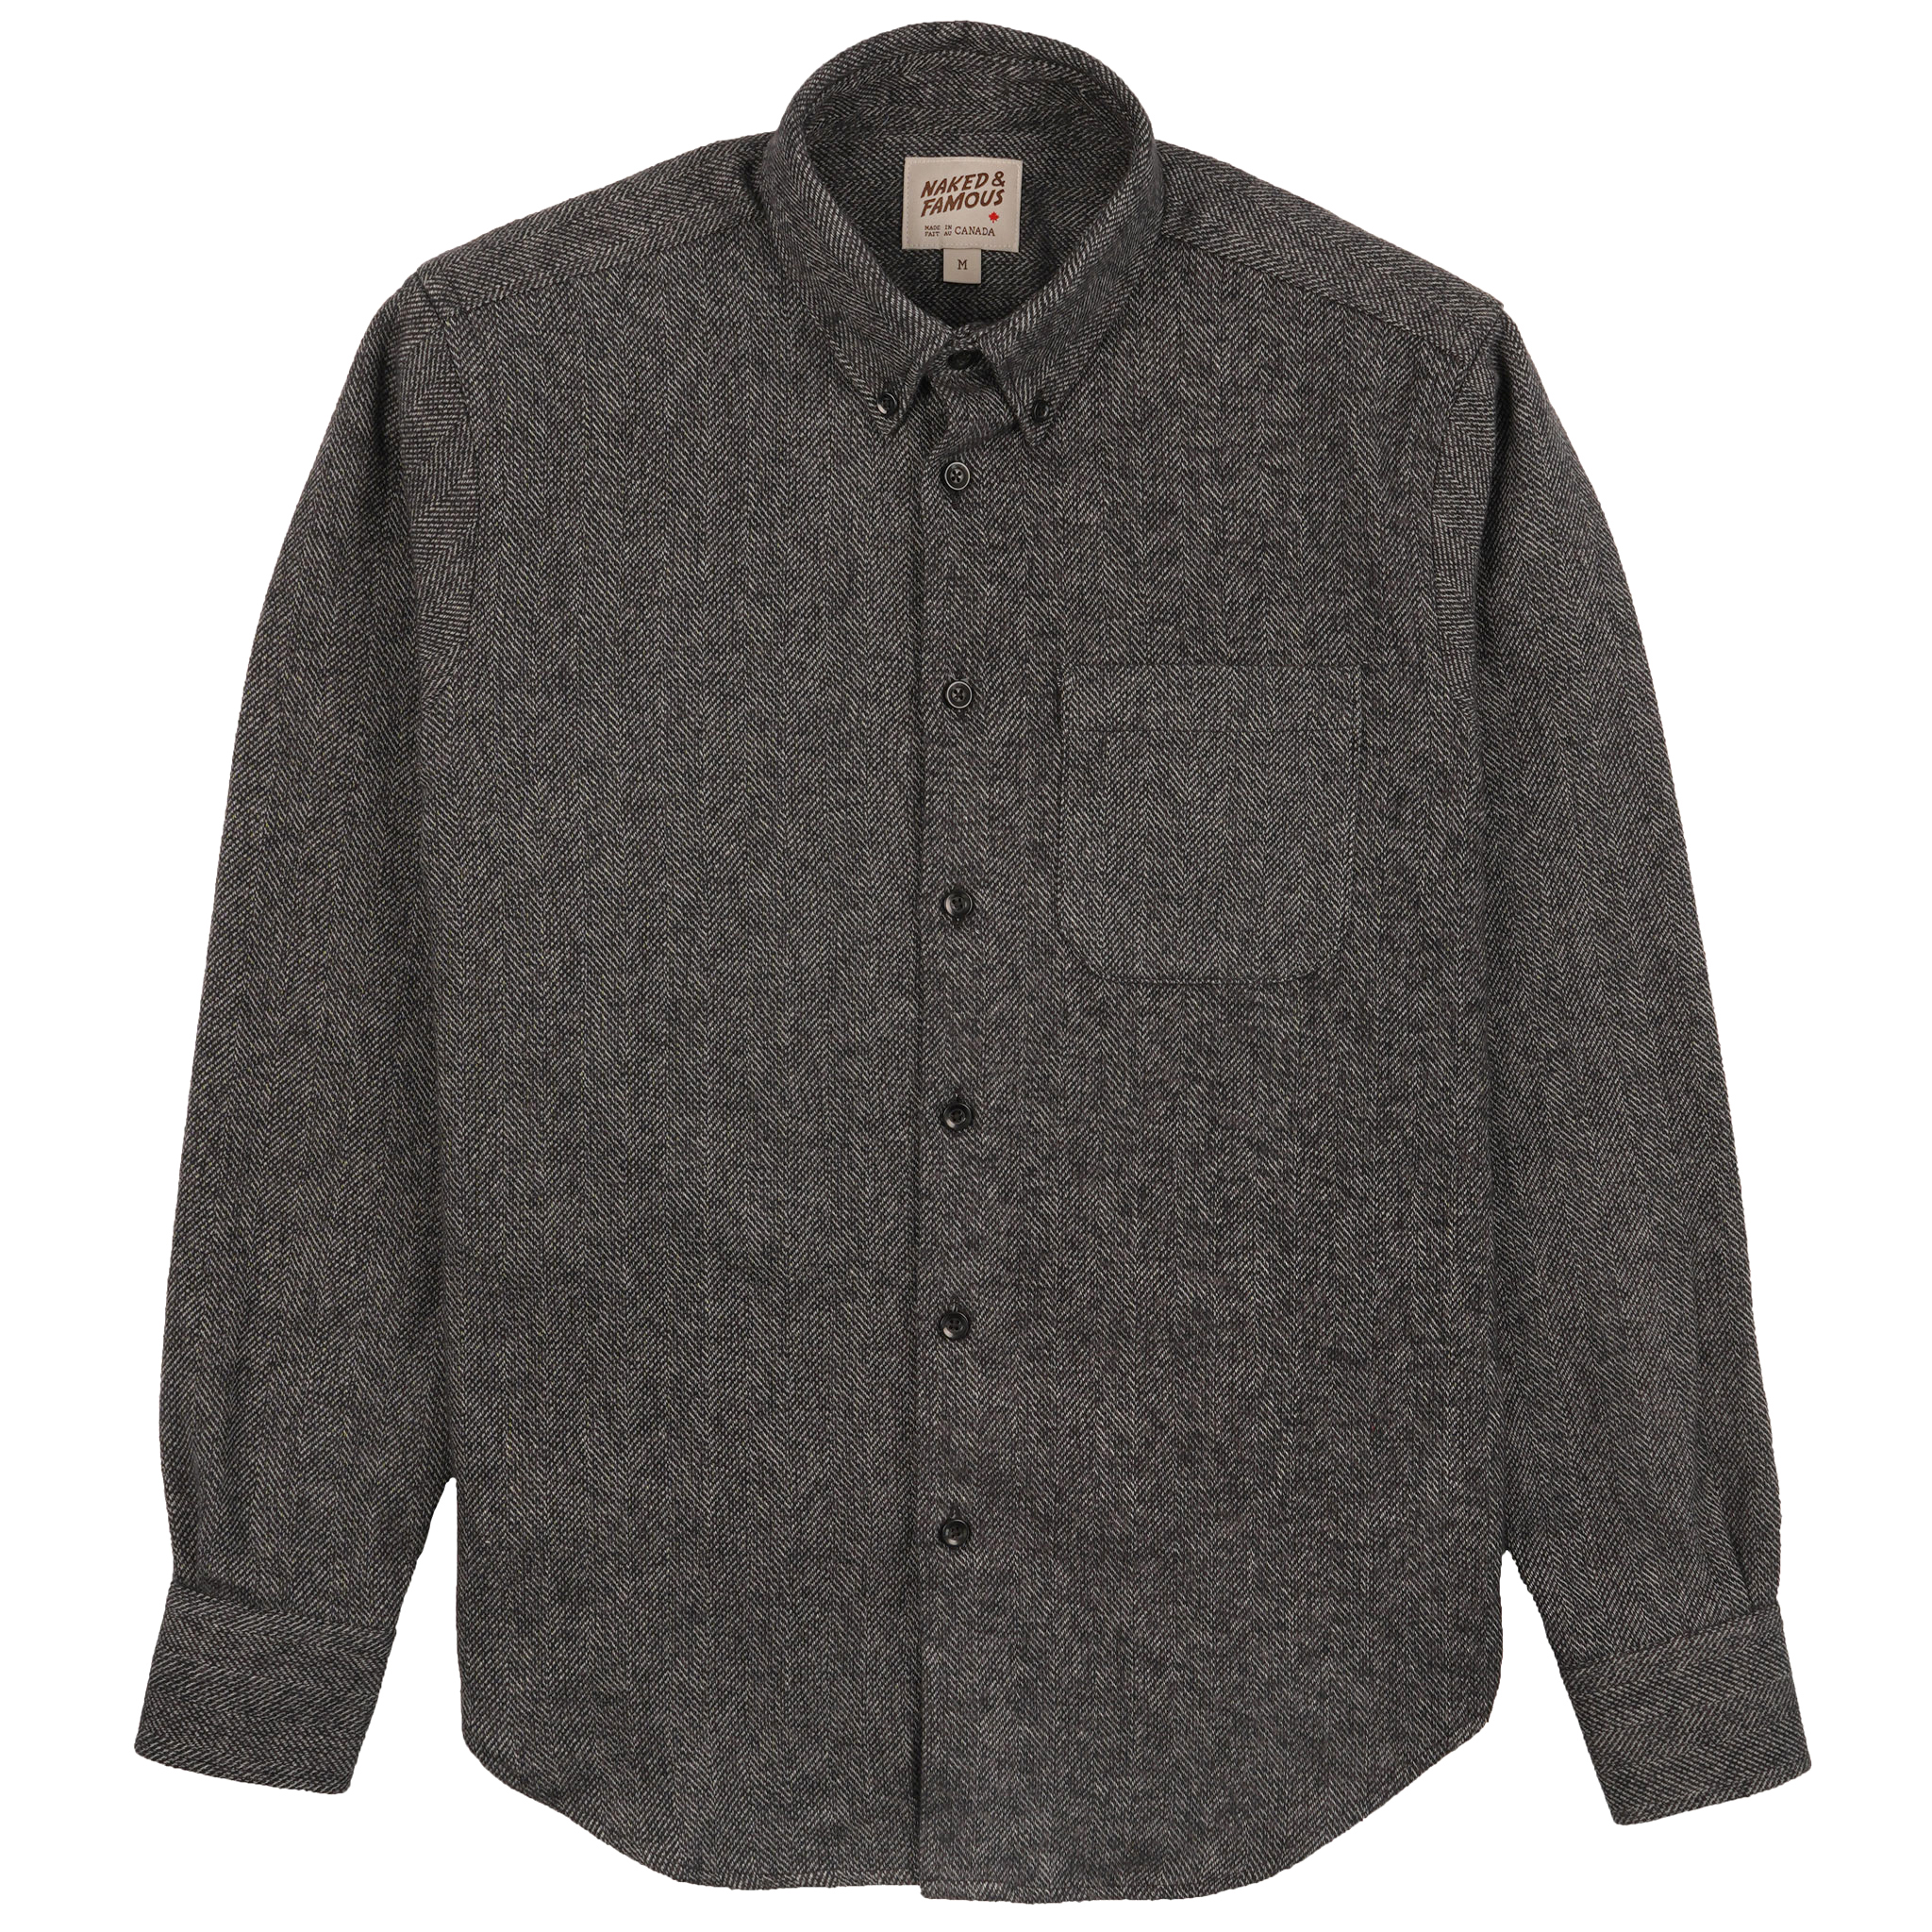 Cotton Tweed - Charcoal - Easy Shirt